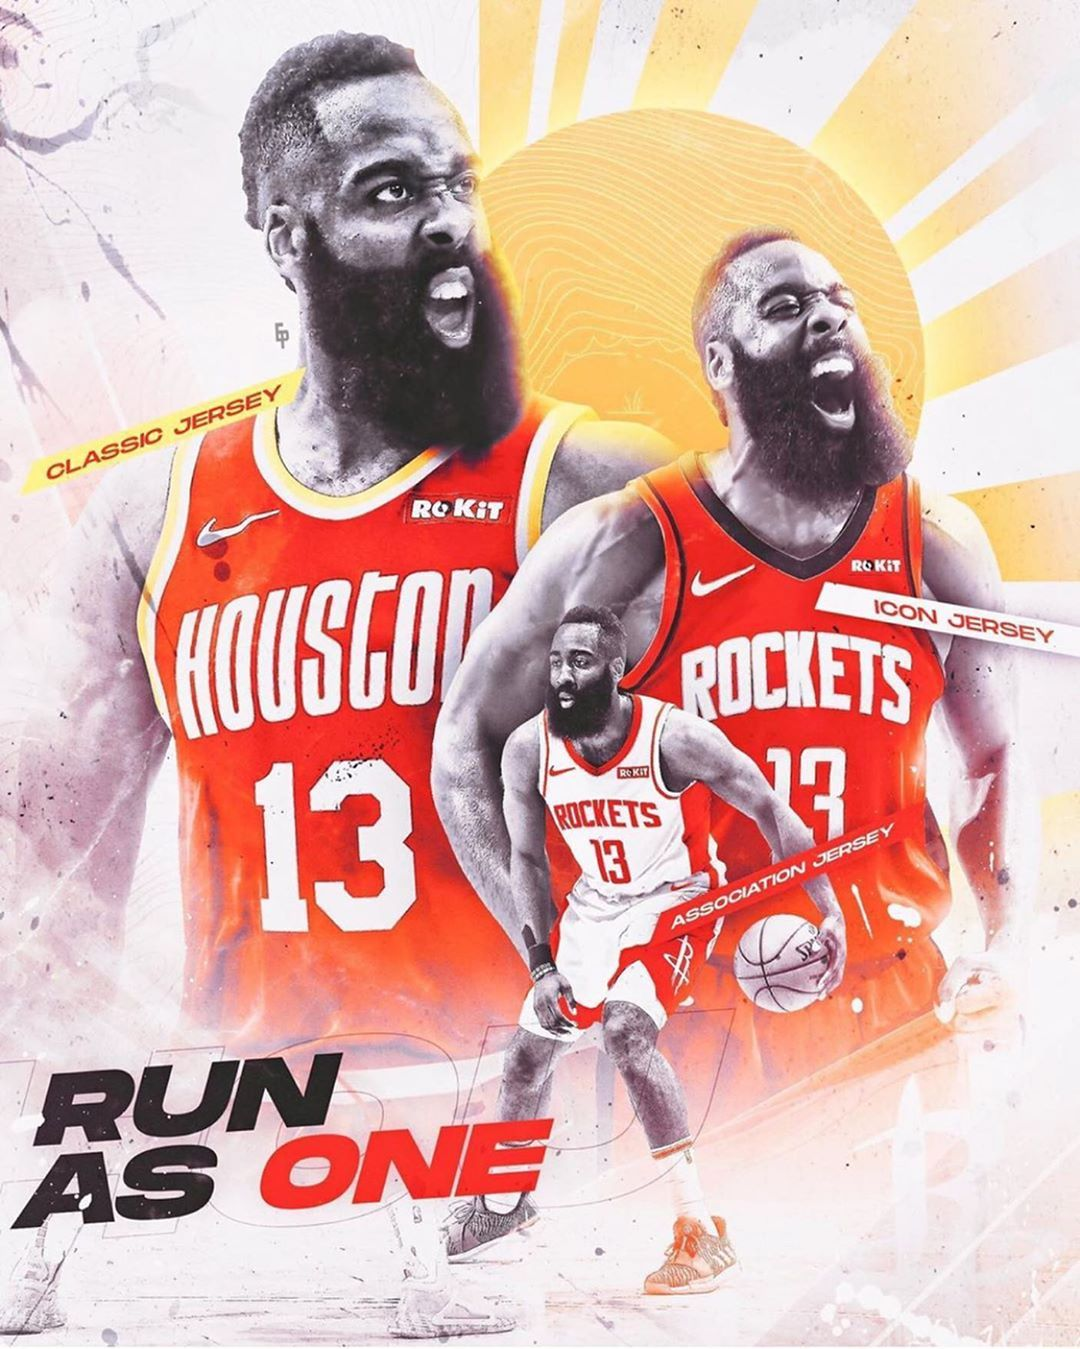 Image may contain one or more people Houston rockets